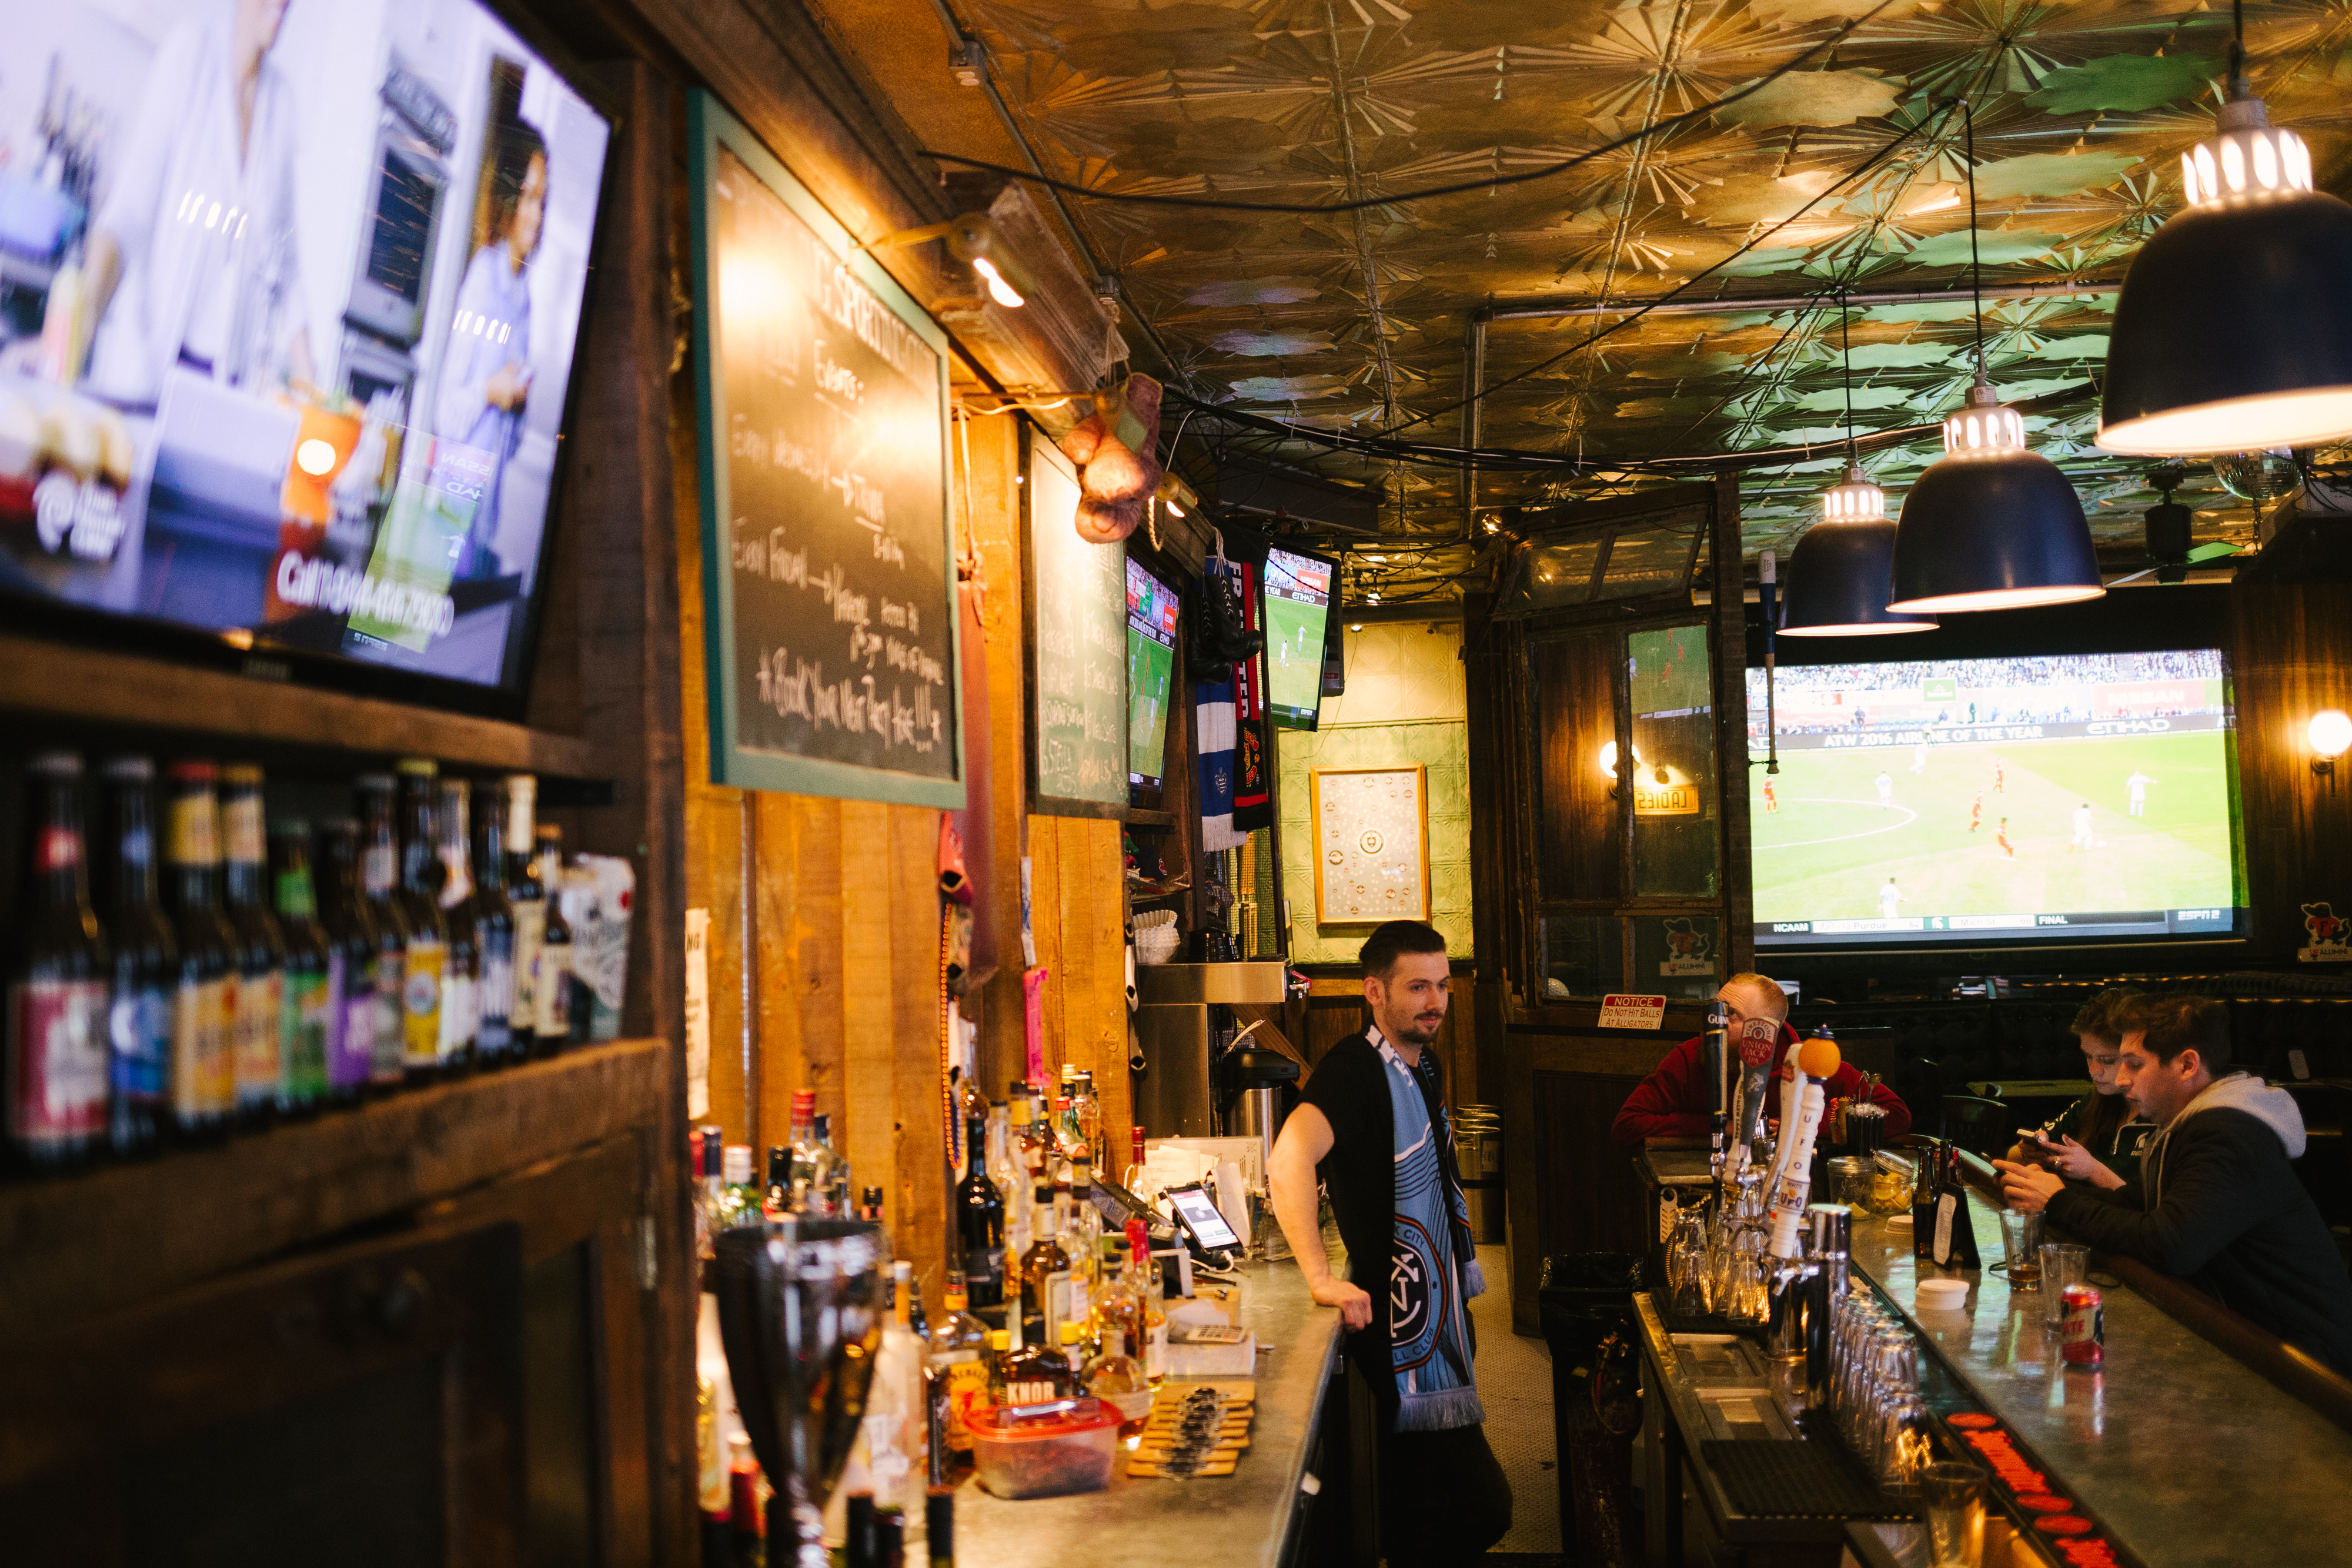 The Best Places To Watch Sports In NYC - New York - The Infatuation